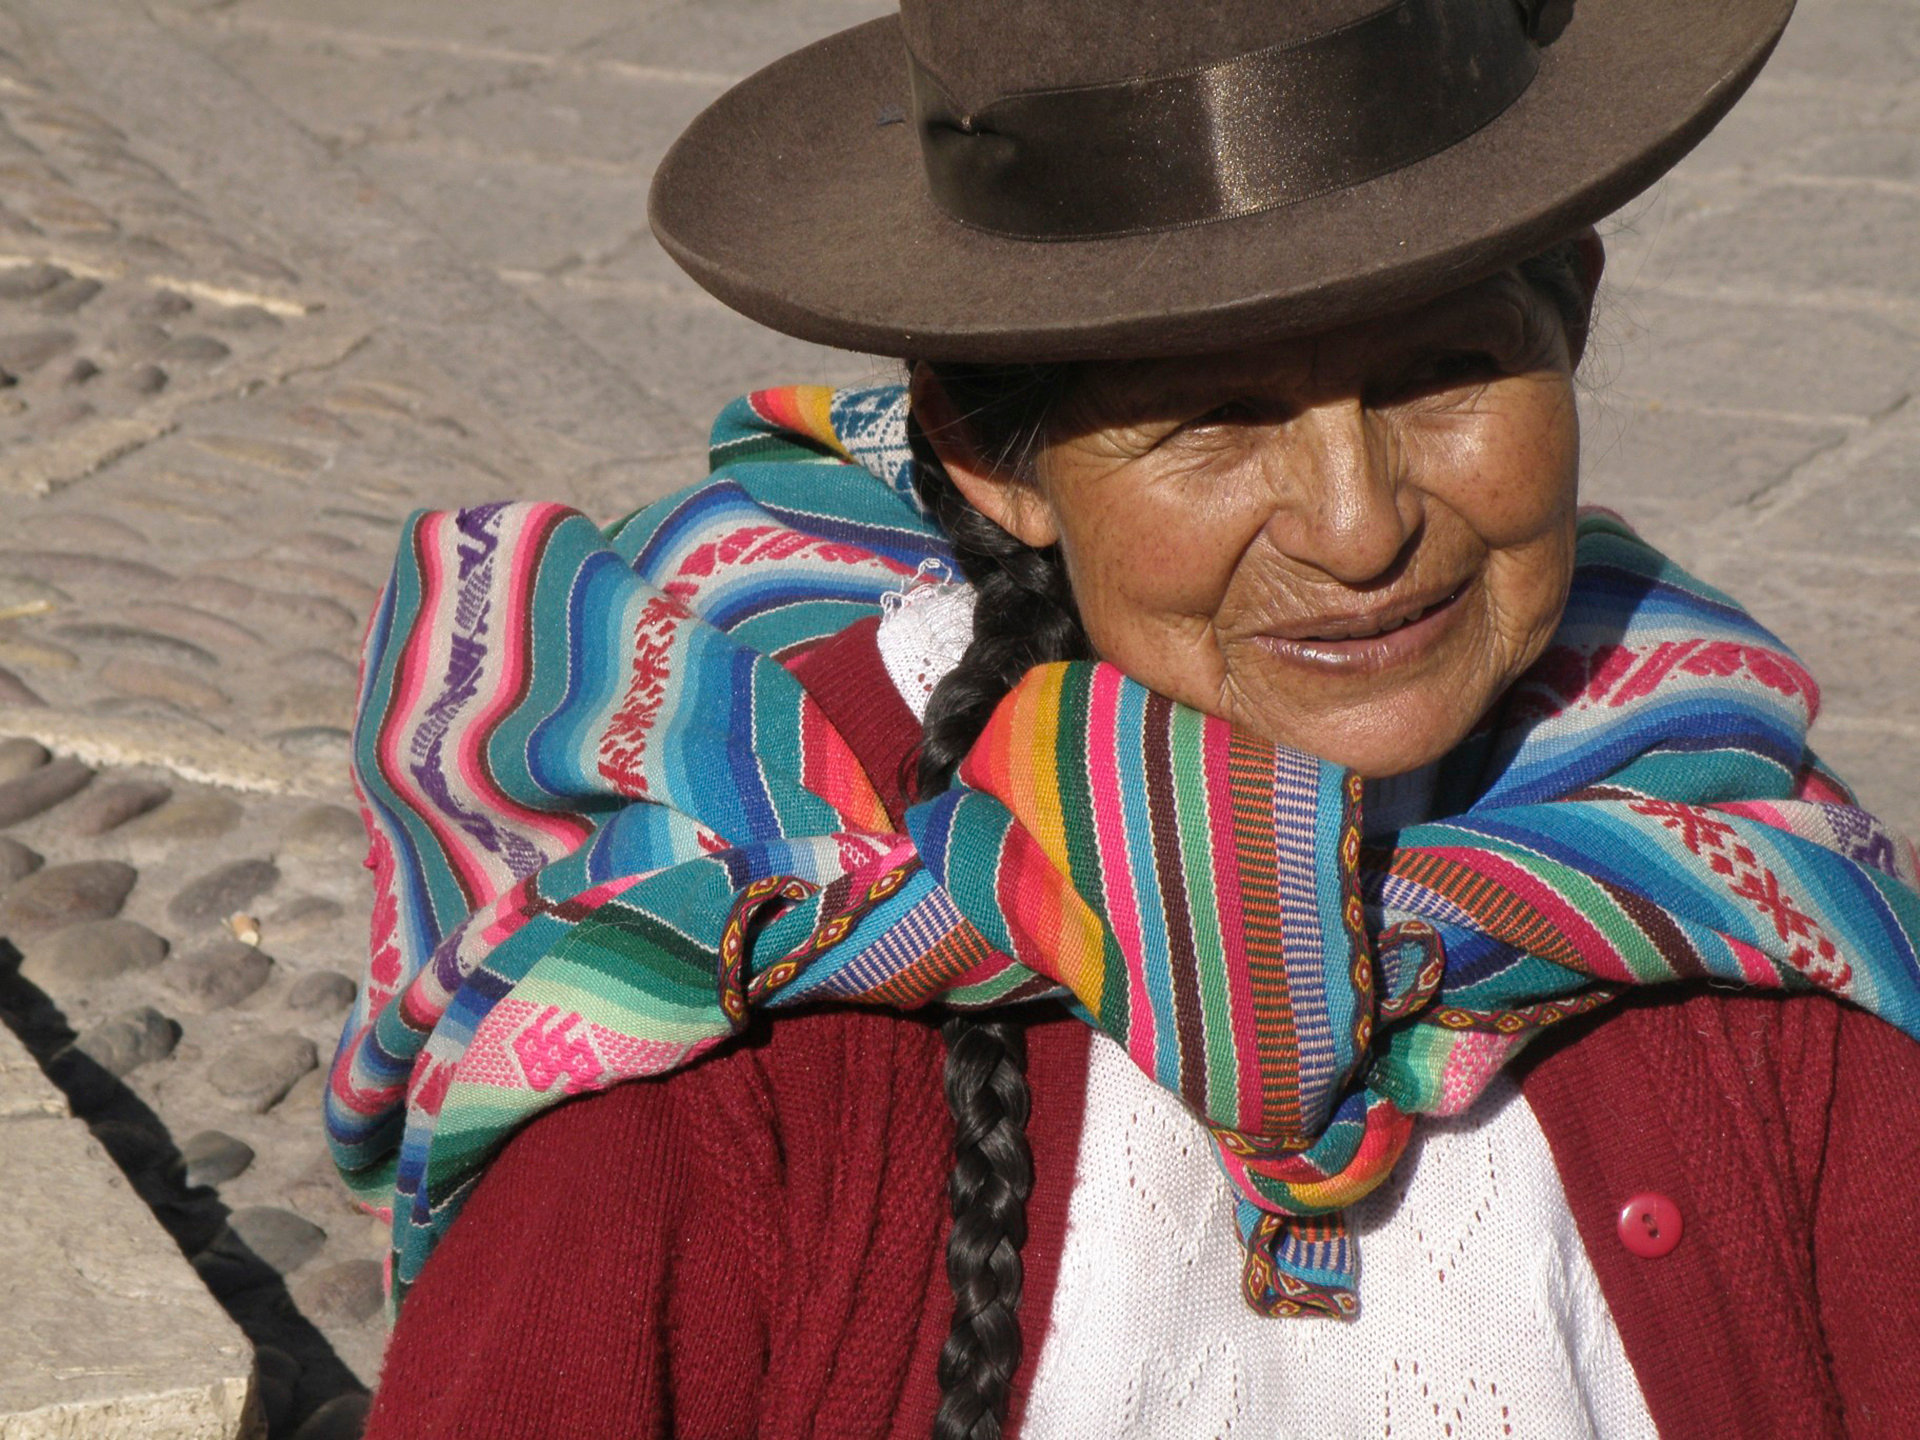 Cusco belt vendor